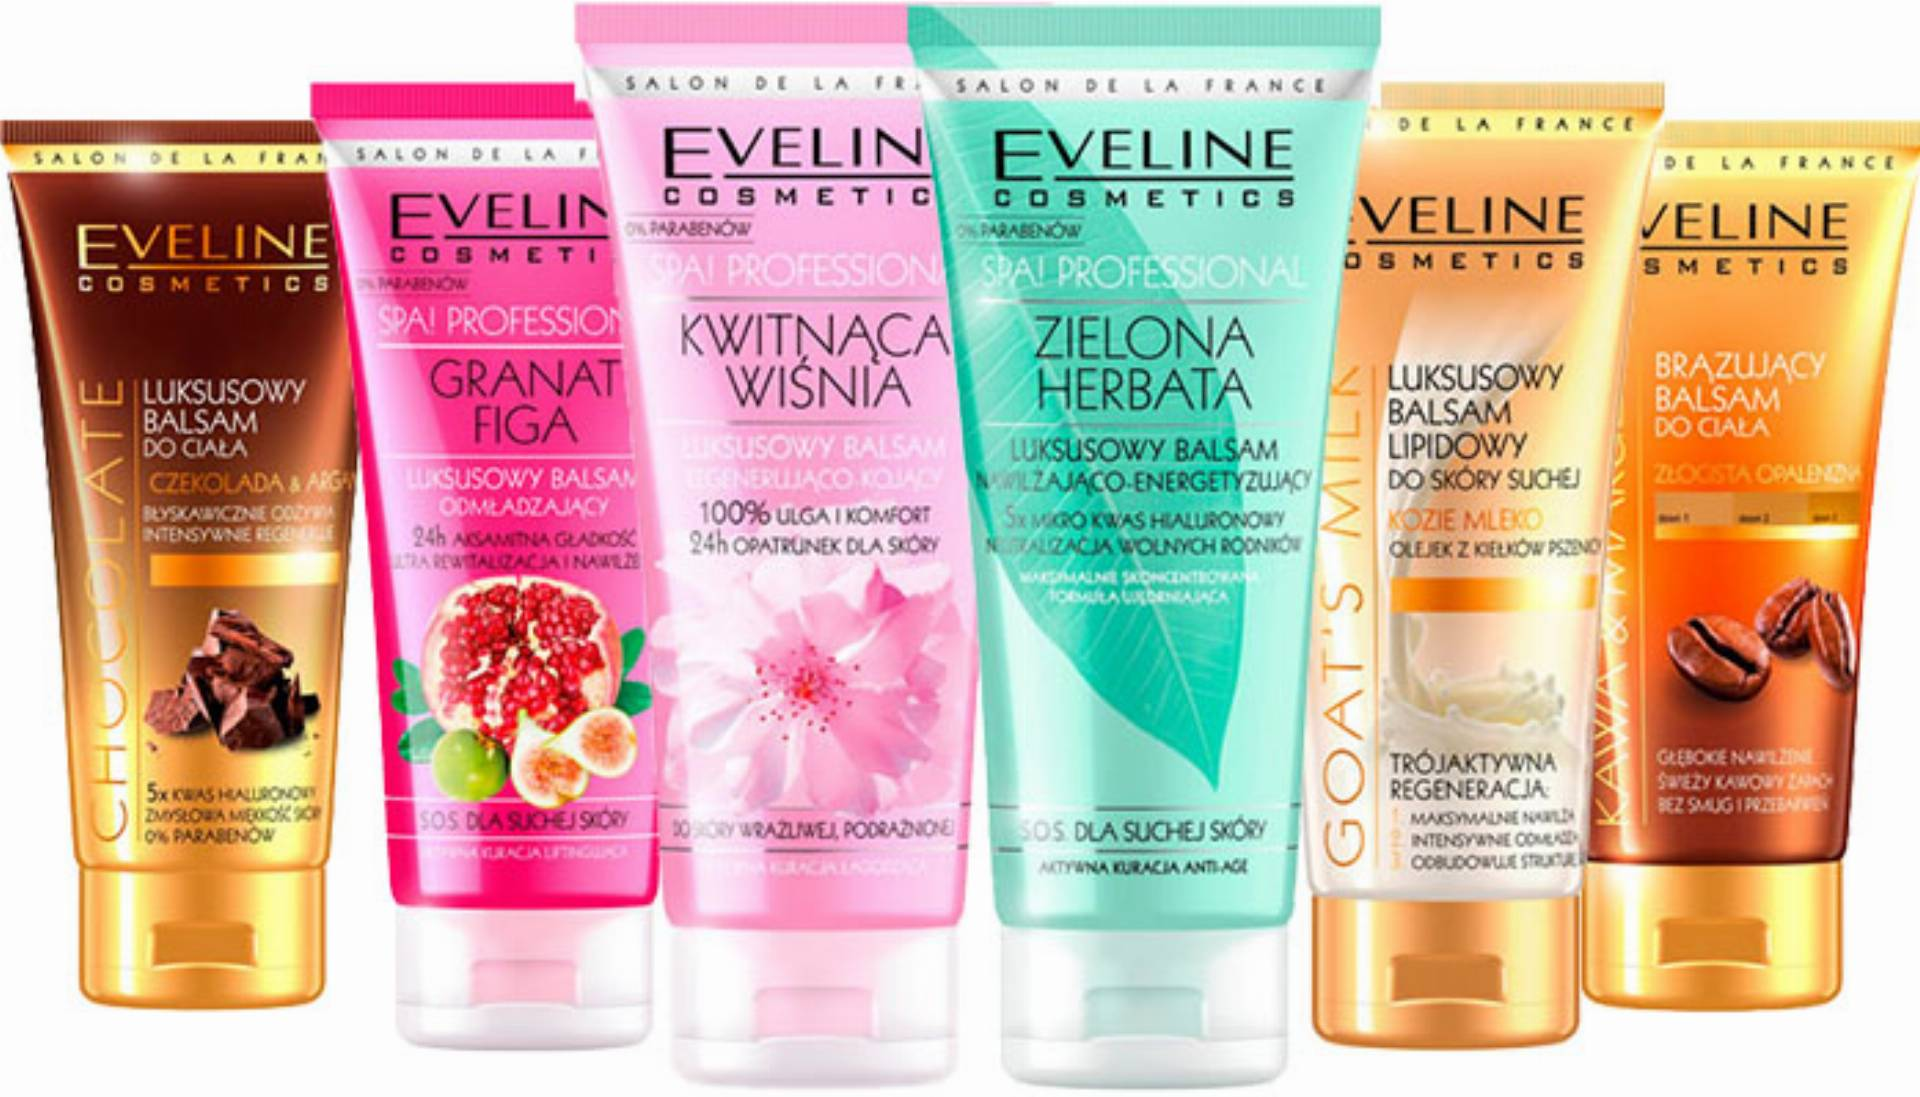 balsamy eveline cosmetics